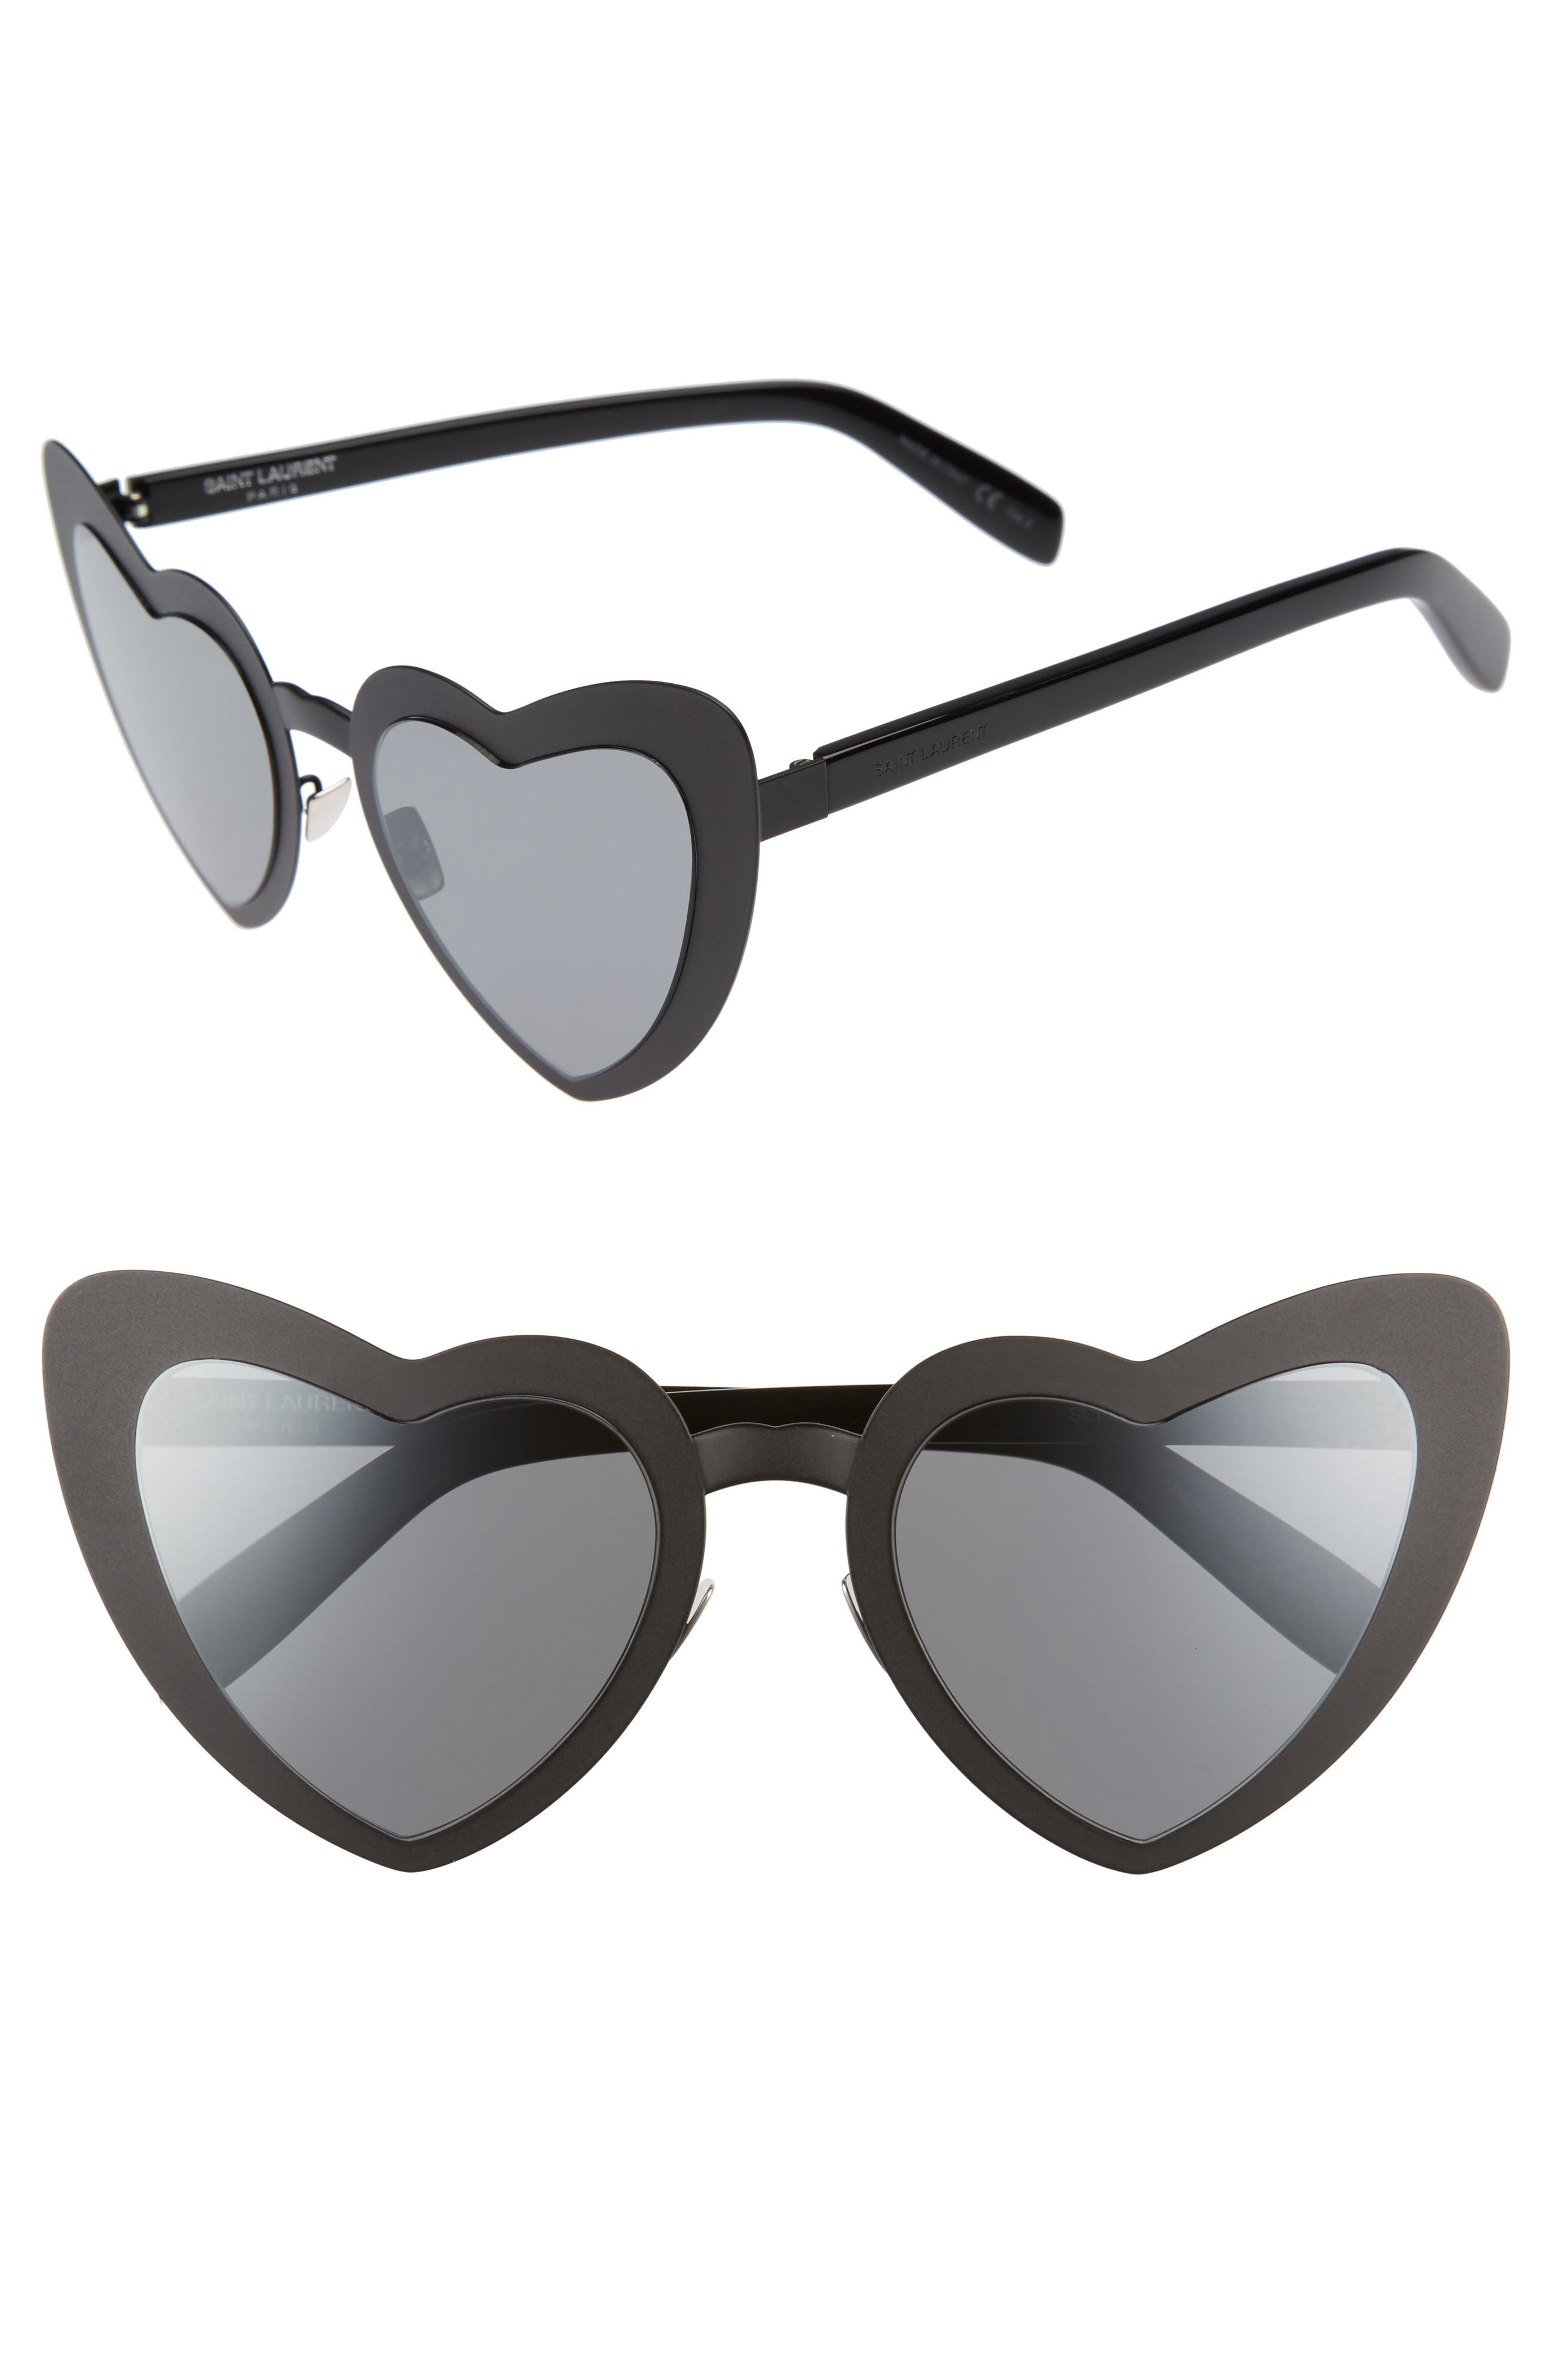 Loulou 55mm Heart Shaped Sunglasses,                             Main thumbnail 1, color,                             Black